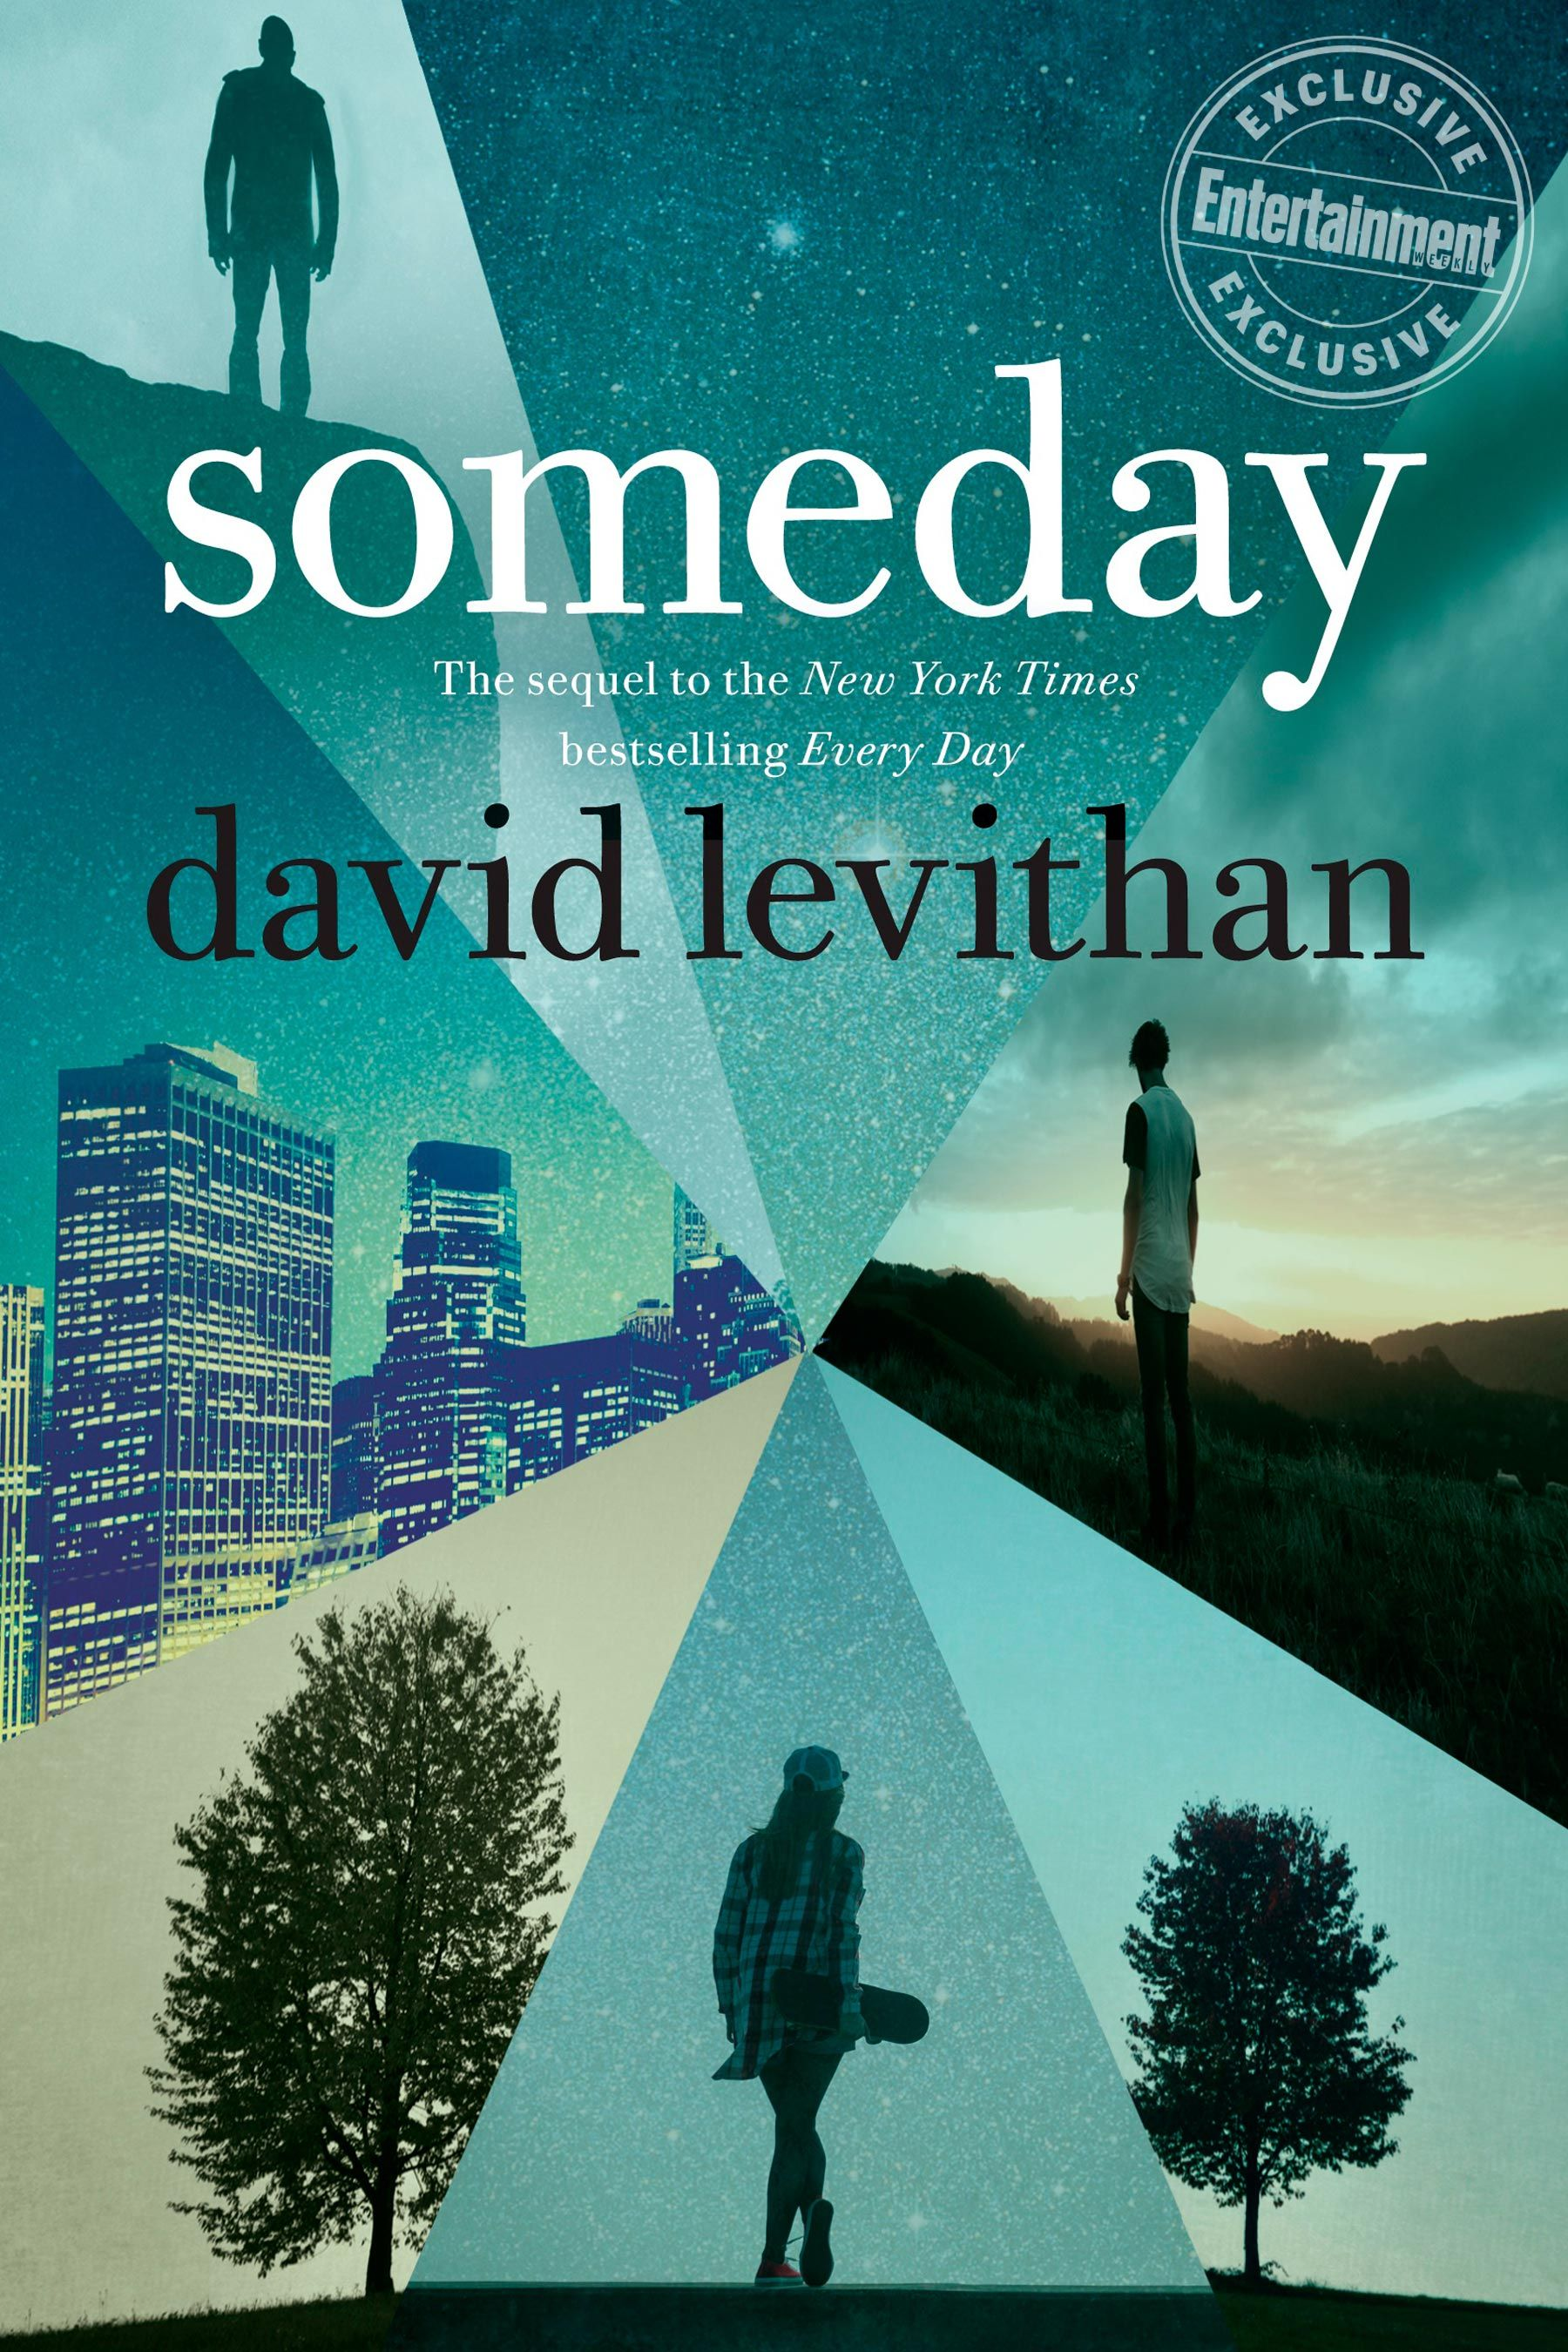 Read an excerpt from David Levithan's 'Every Day' sequel